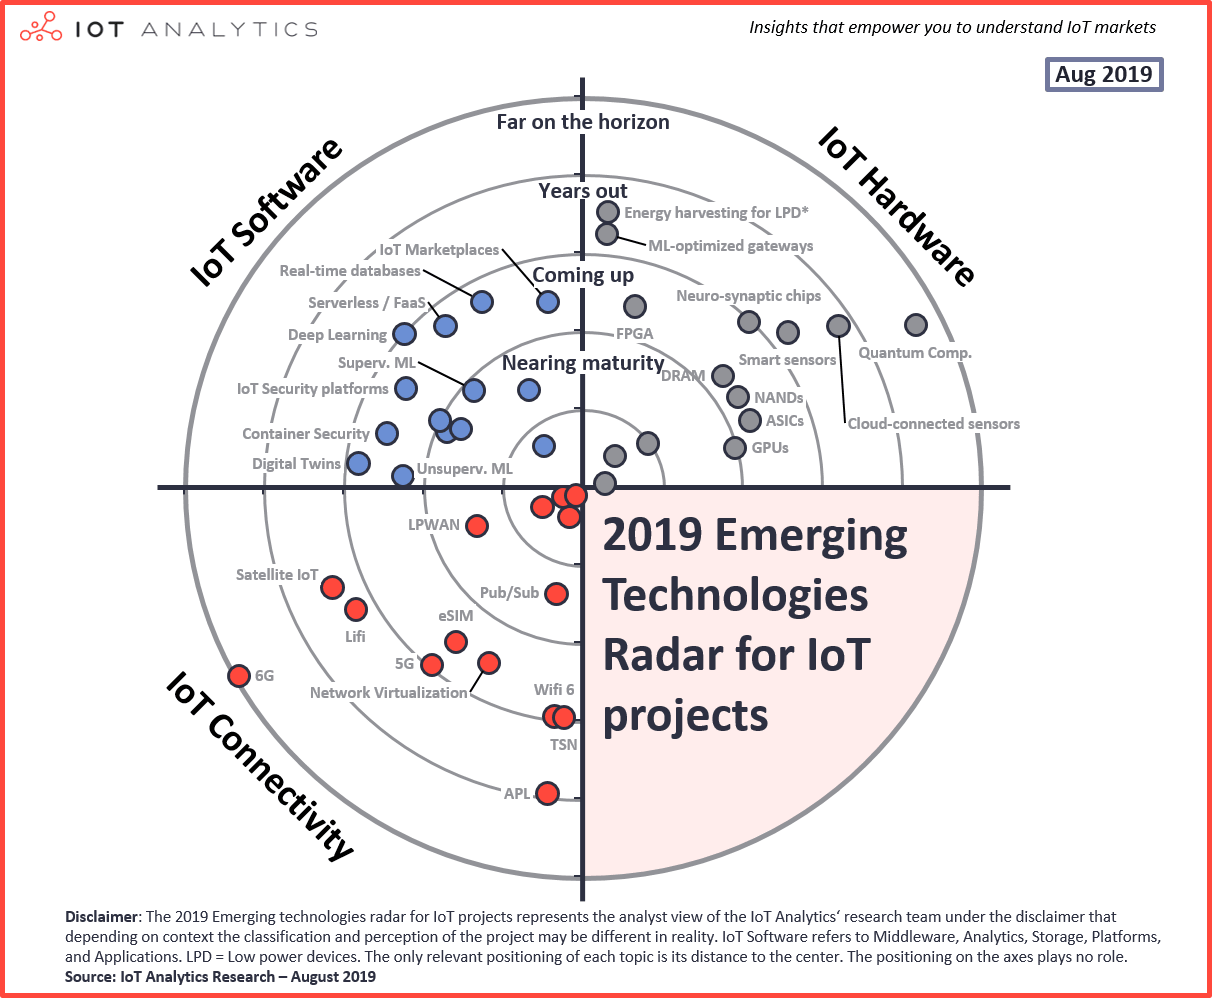 Emerging IoT Technologies Radar 2019